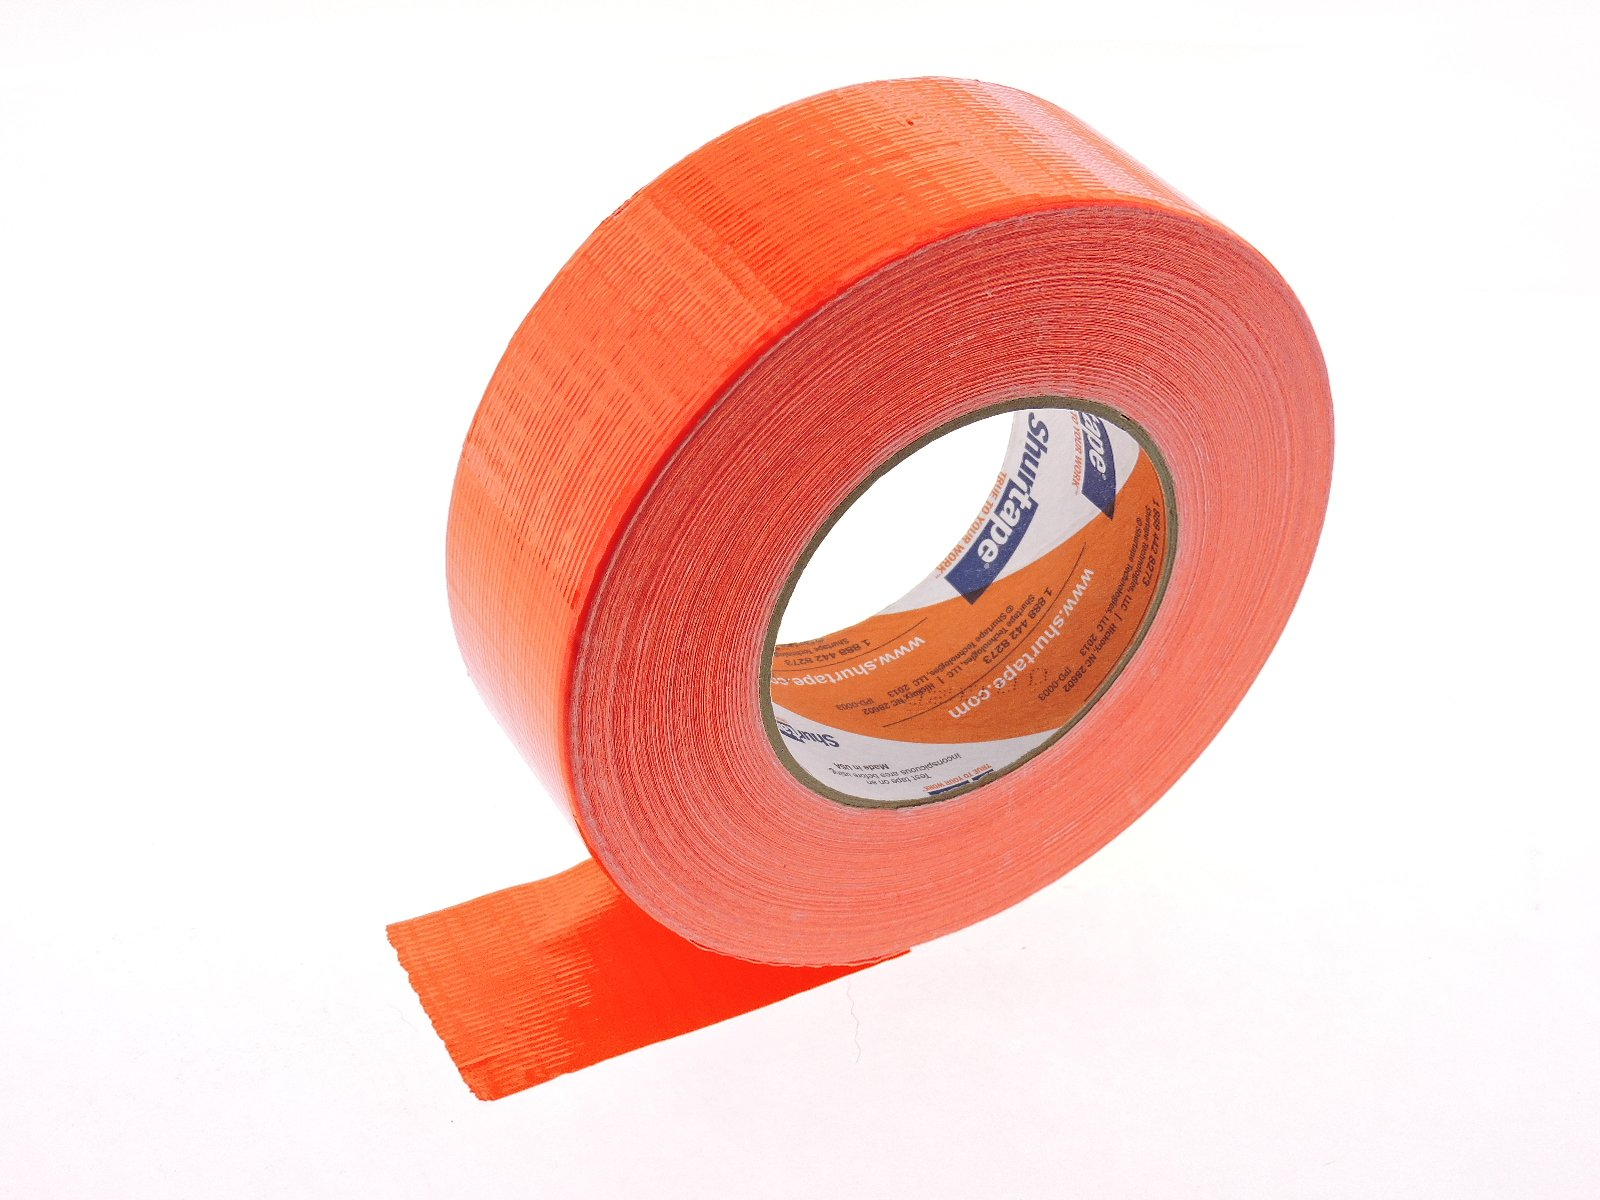 PC-619 Shurtape 2'' Orange Blaze Safety Hazard Bright Fluorescent Neon Colored 9 Mil Cloth Duct Tape Water UV Tear Resistant 60yd USA Made Colors High Visibility Safety Warning Marking